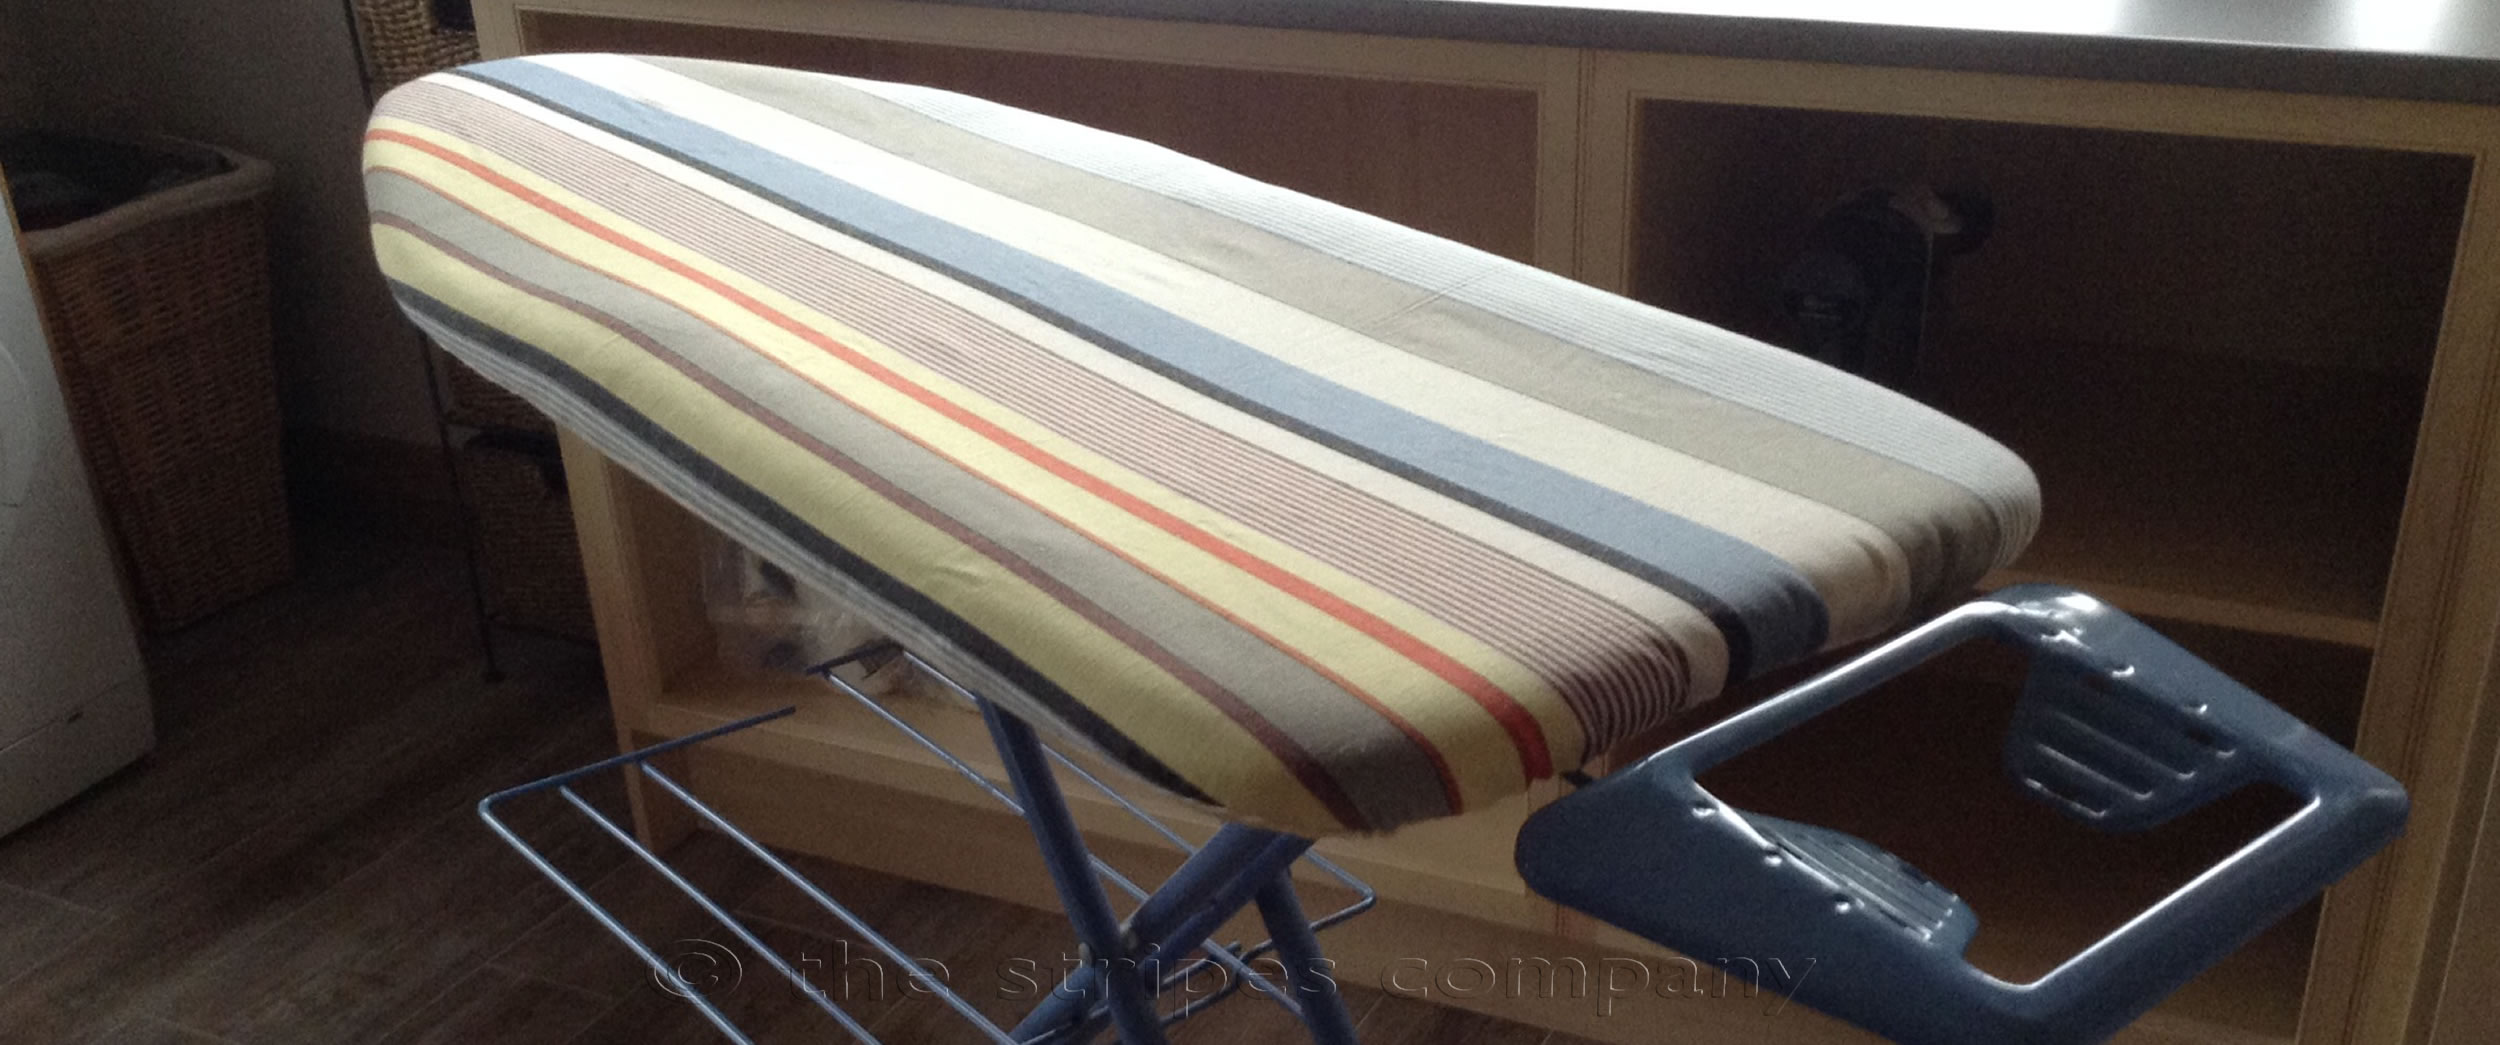 Navy Striped Ironing Board Covers | Snowboarding Stripe